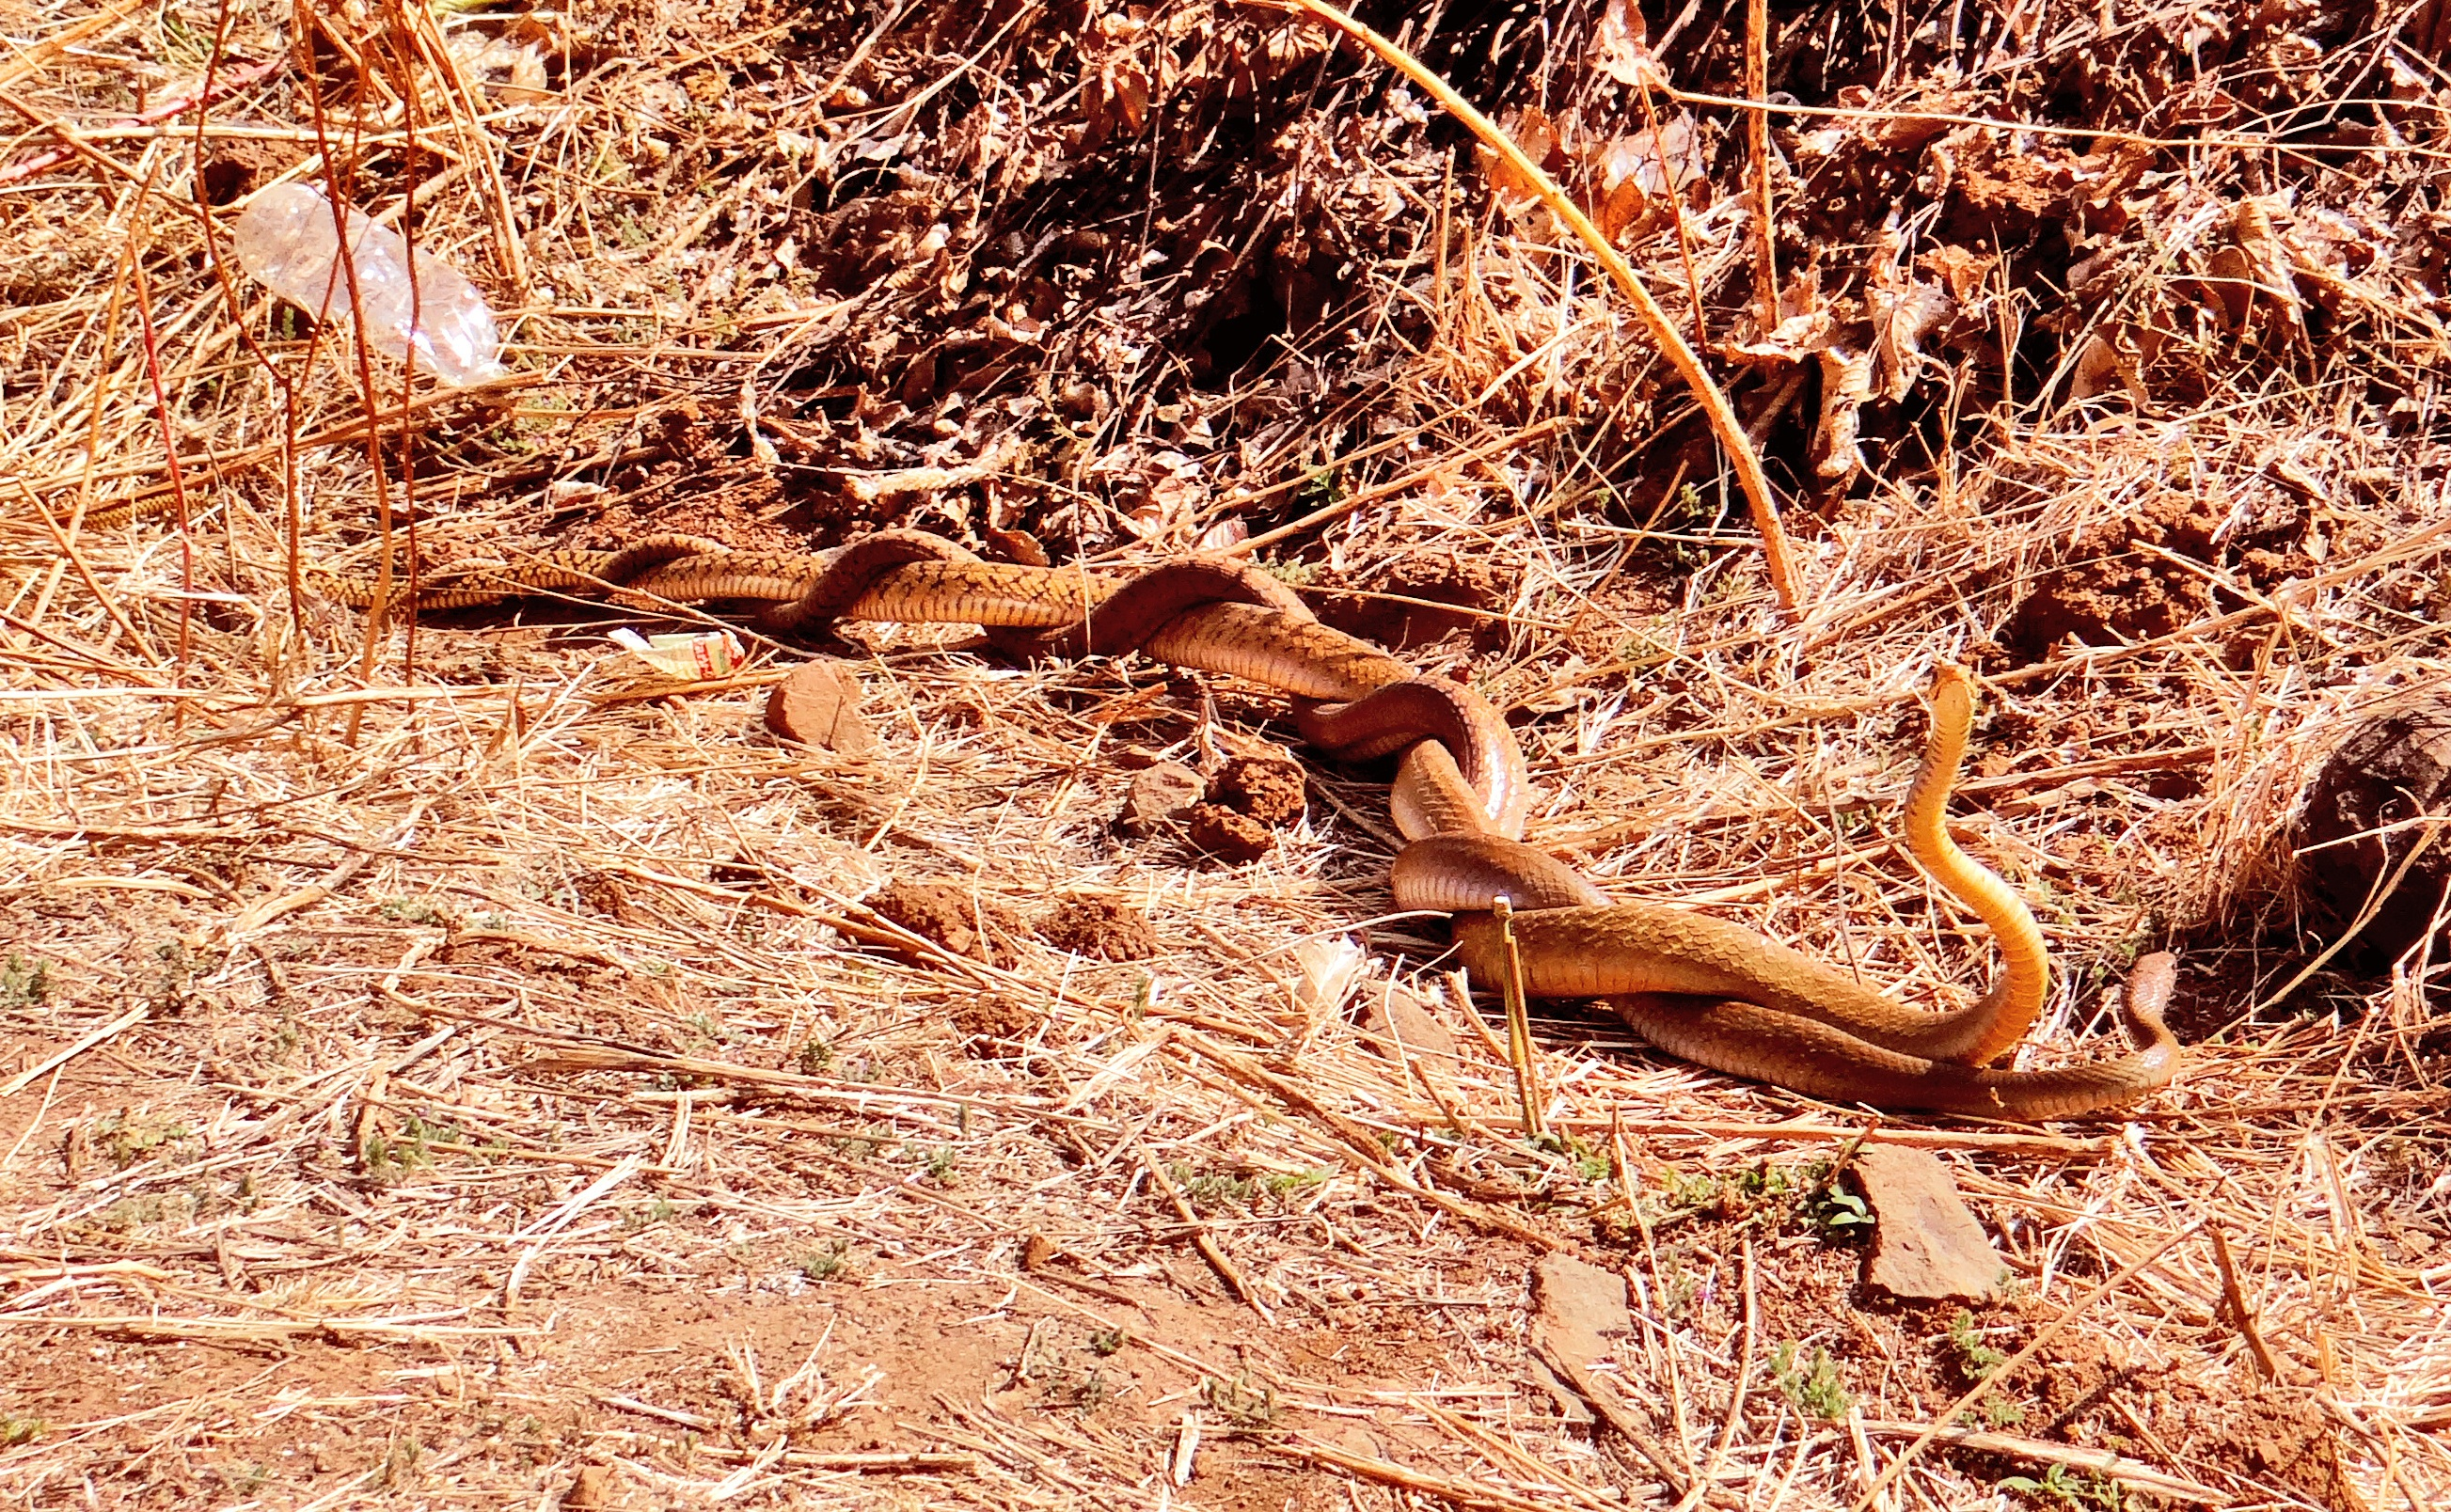 Snakes pair mating in a deep lone forest